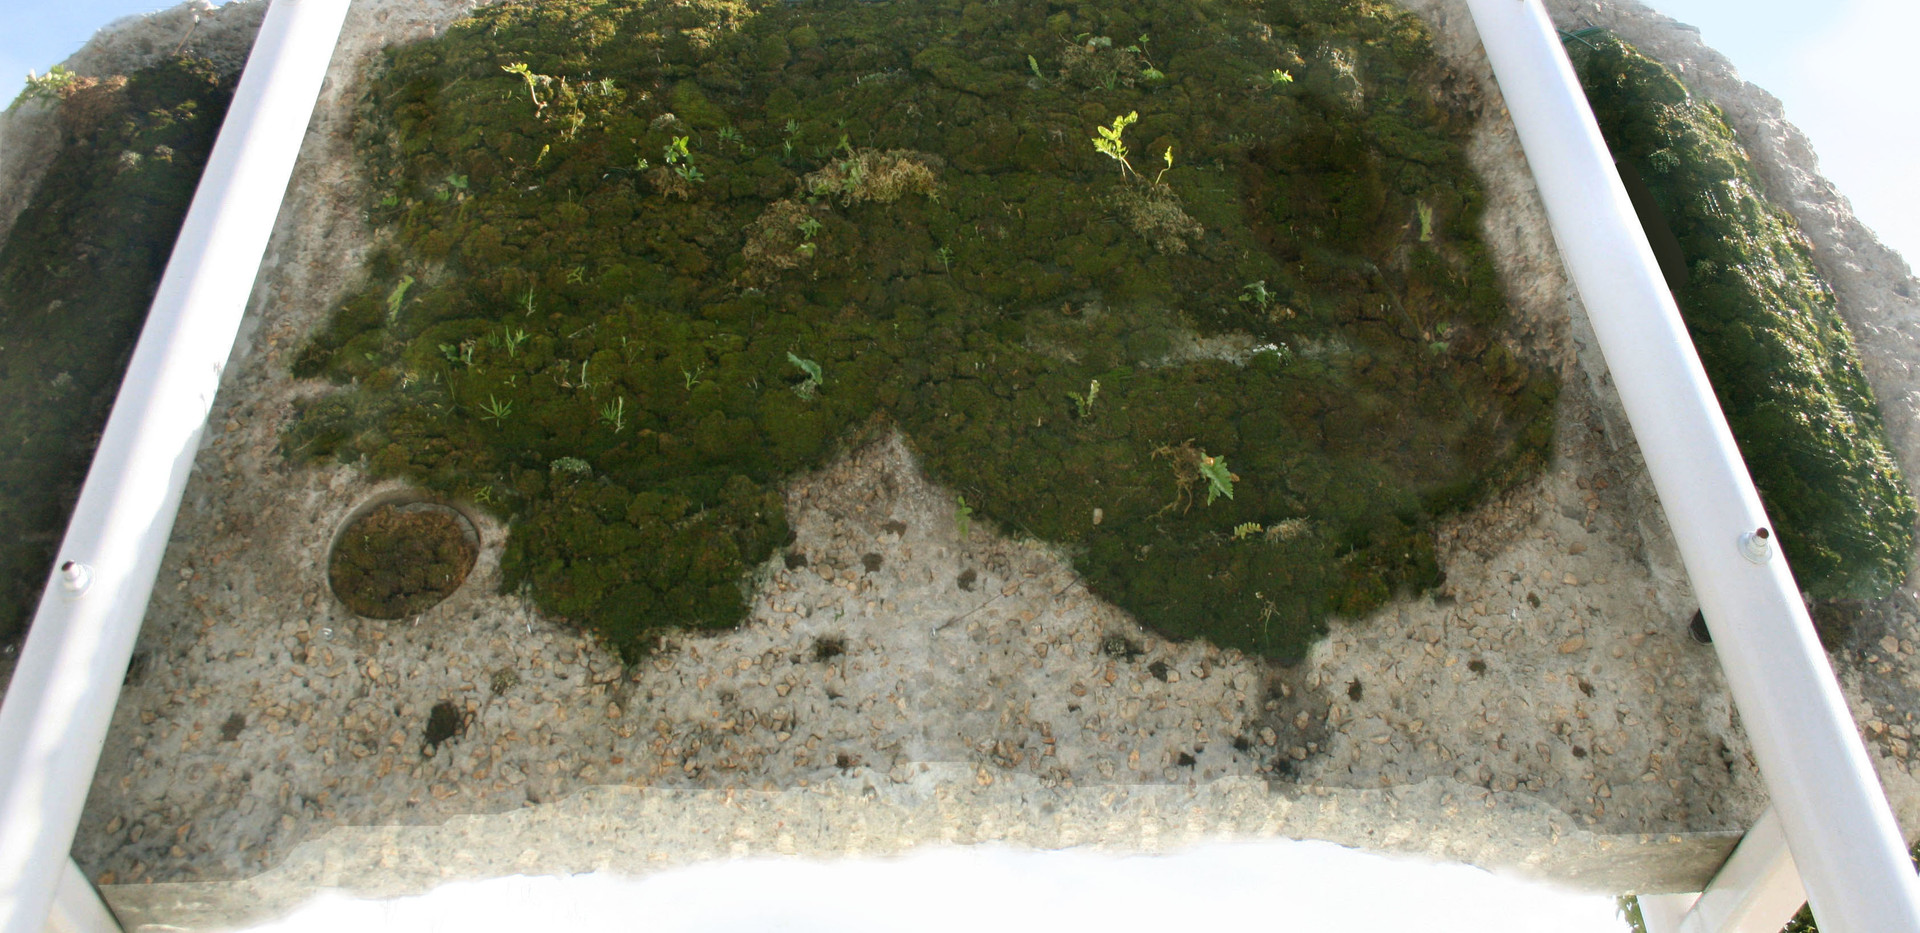 The side of the street fragment that was underground is sprayed with recycled water, allowing moss and ferns and other plants to grow.